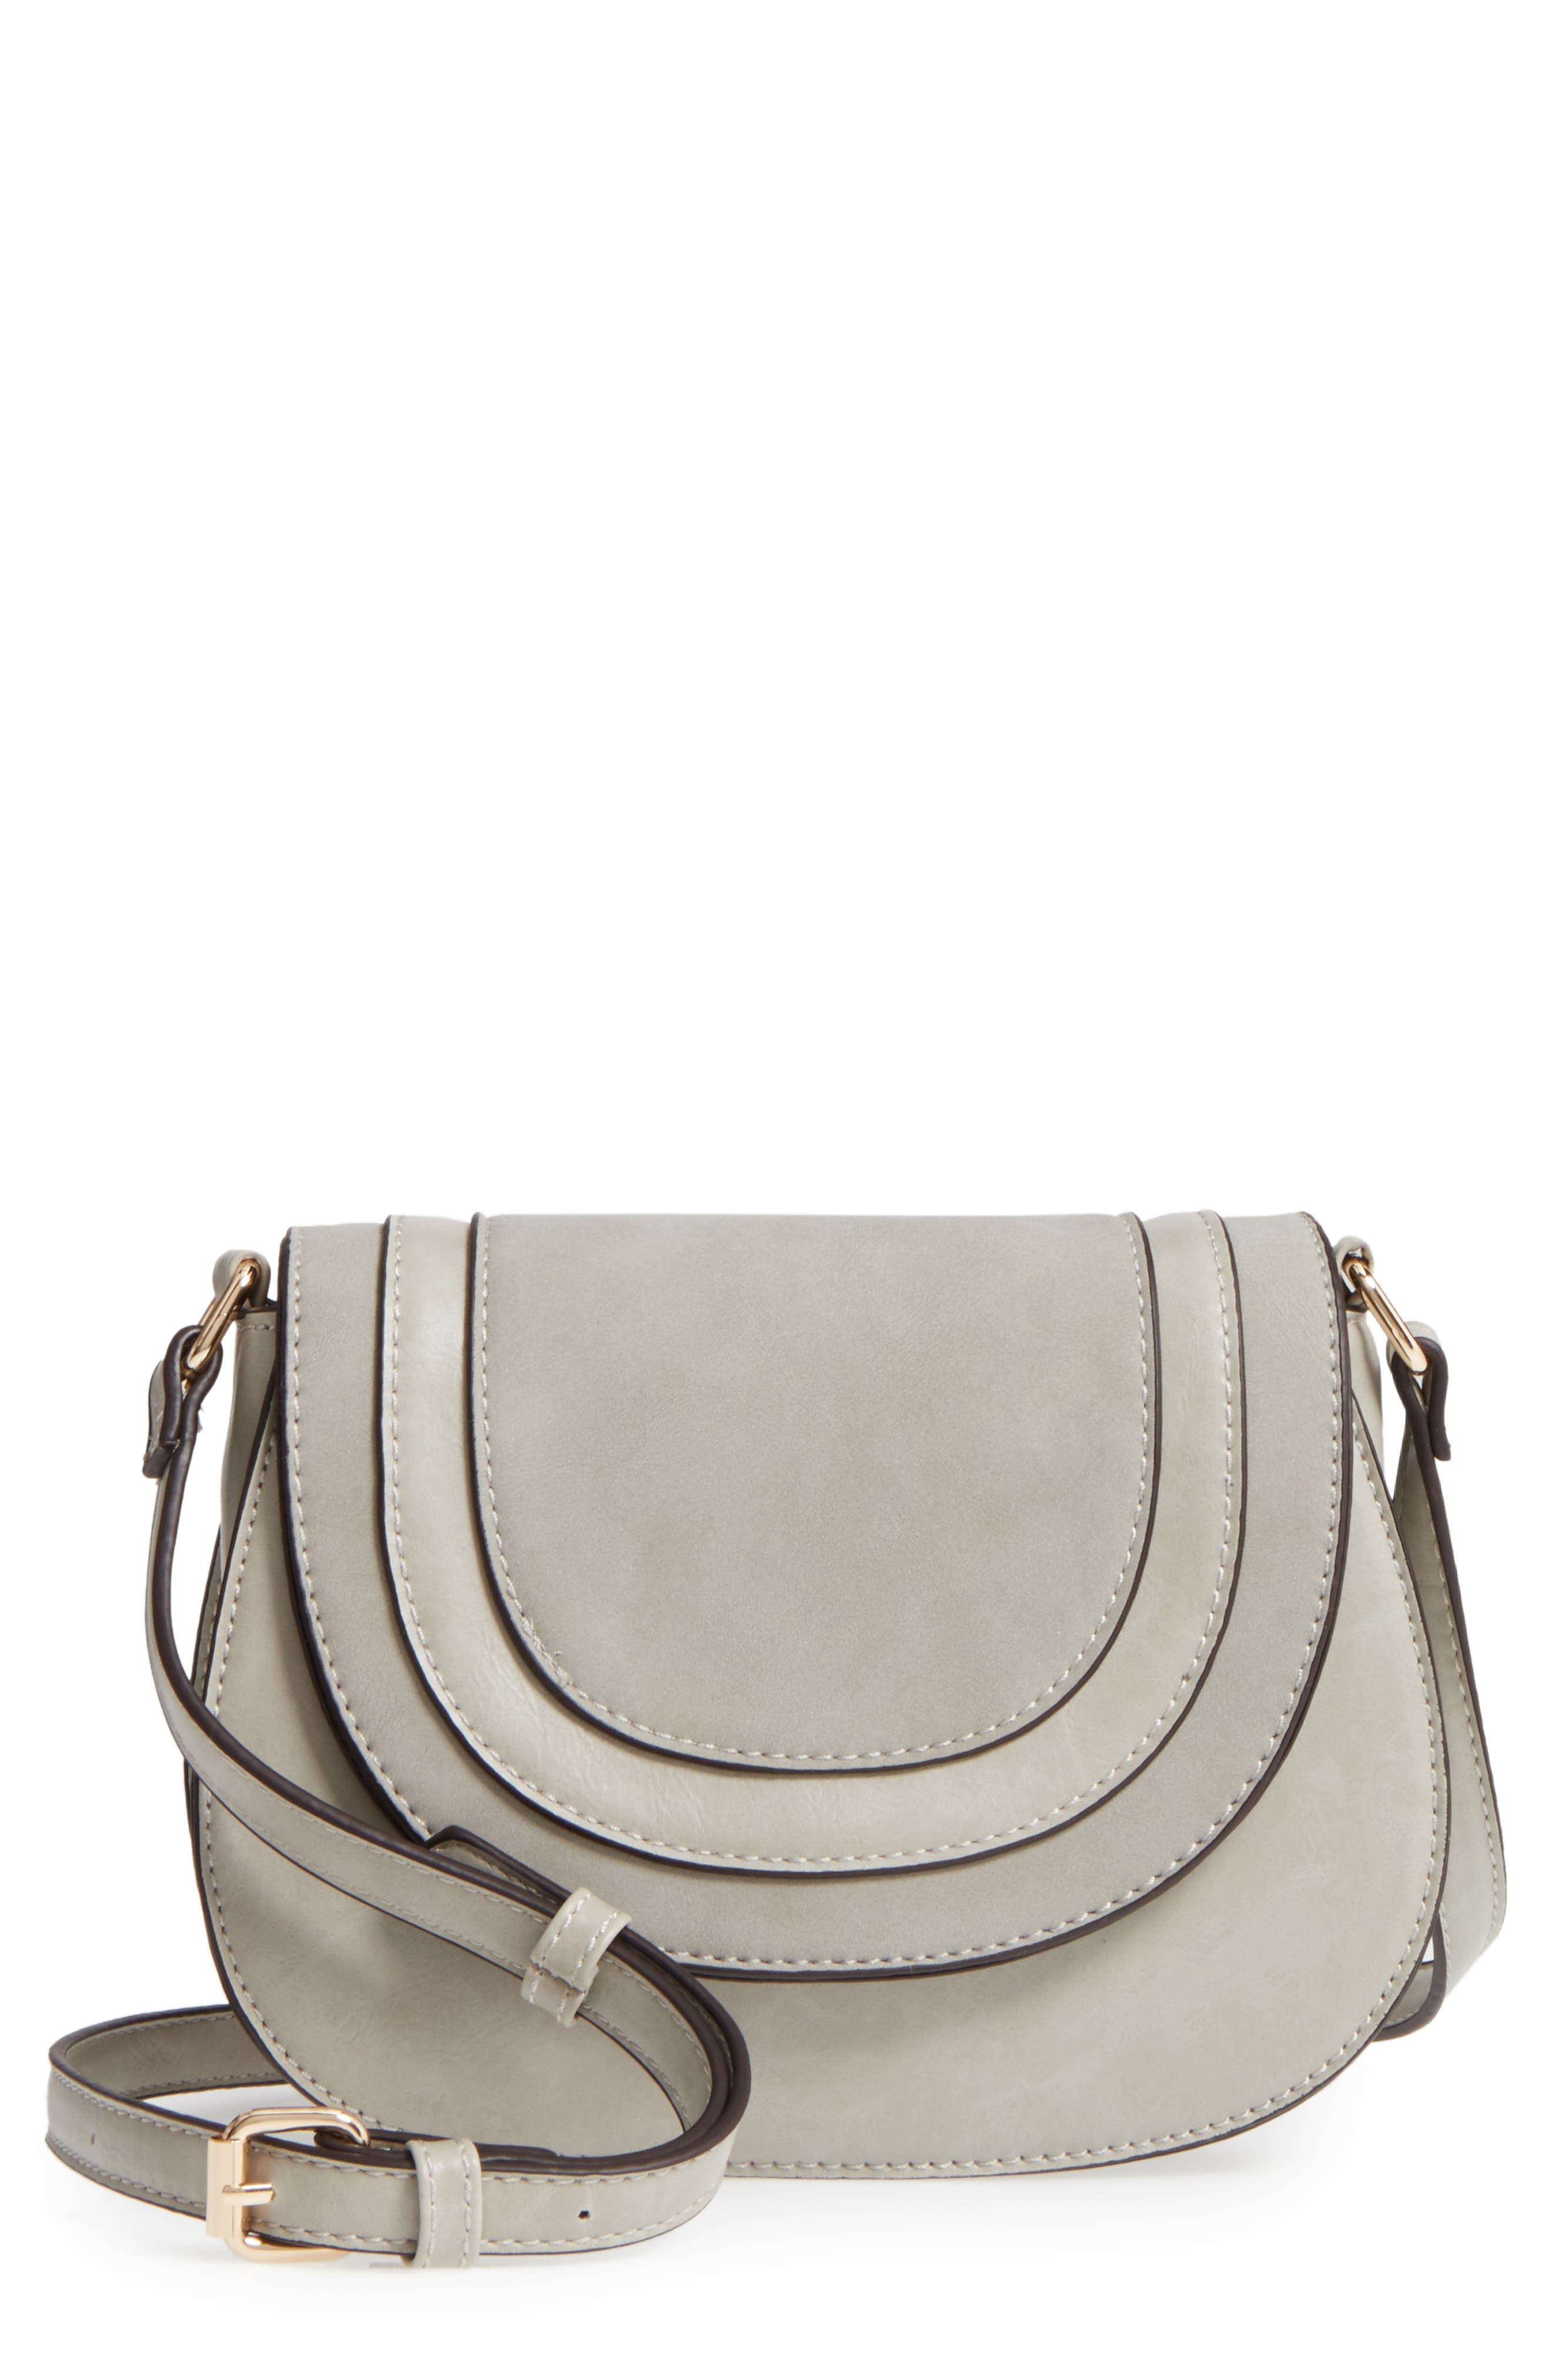 Main Image - Sole Society Bryson Faux Leather Crossbody Bag